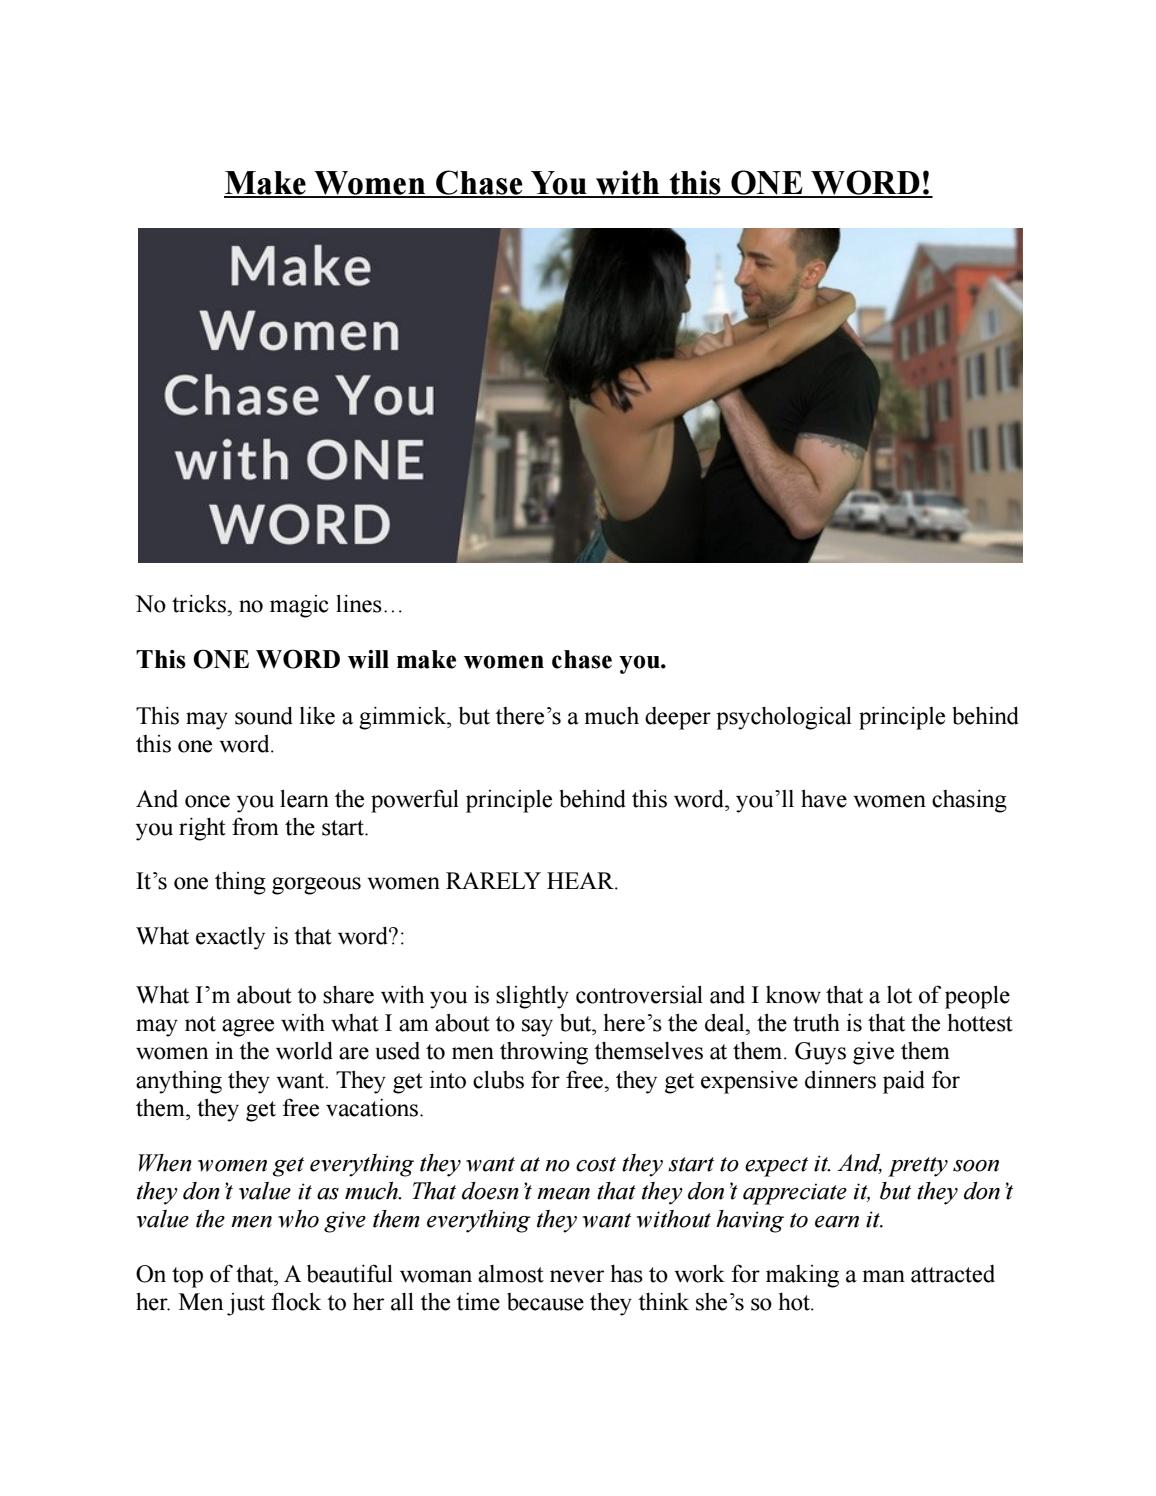 Make Women Chase You with this ONE WORD! by The Attractive